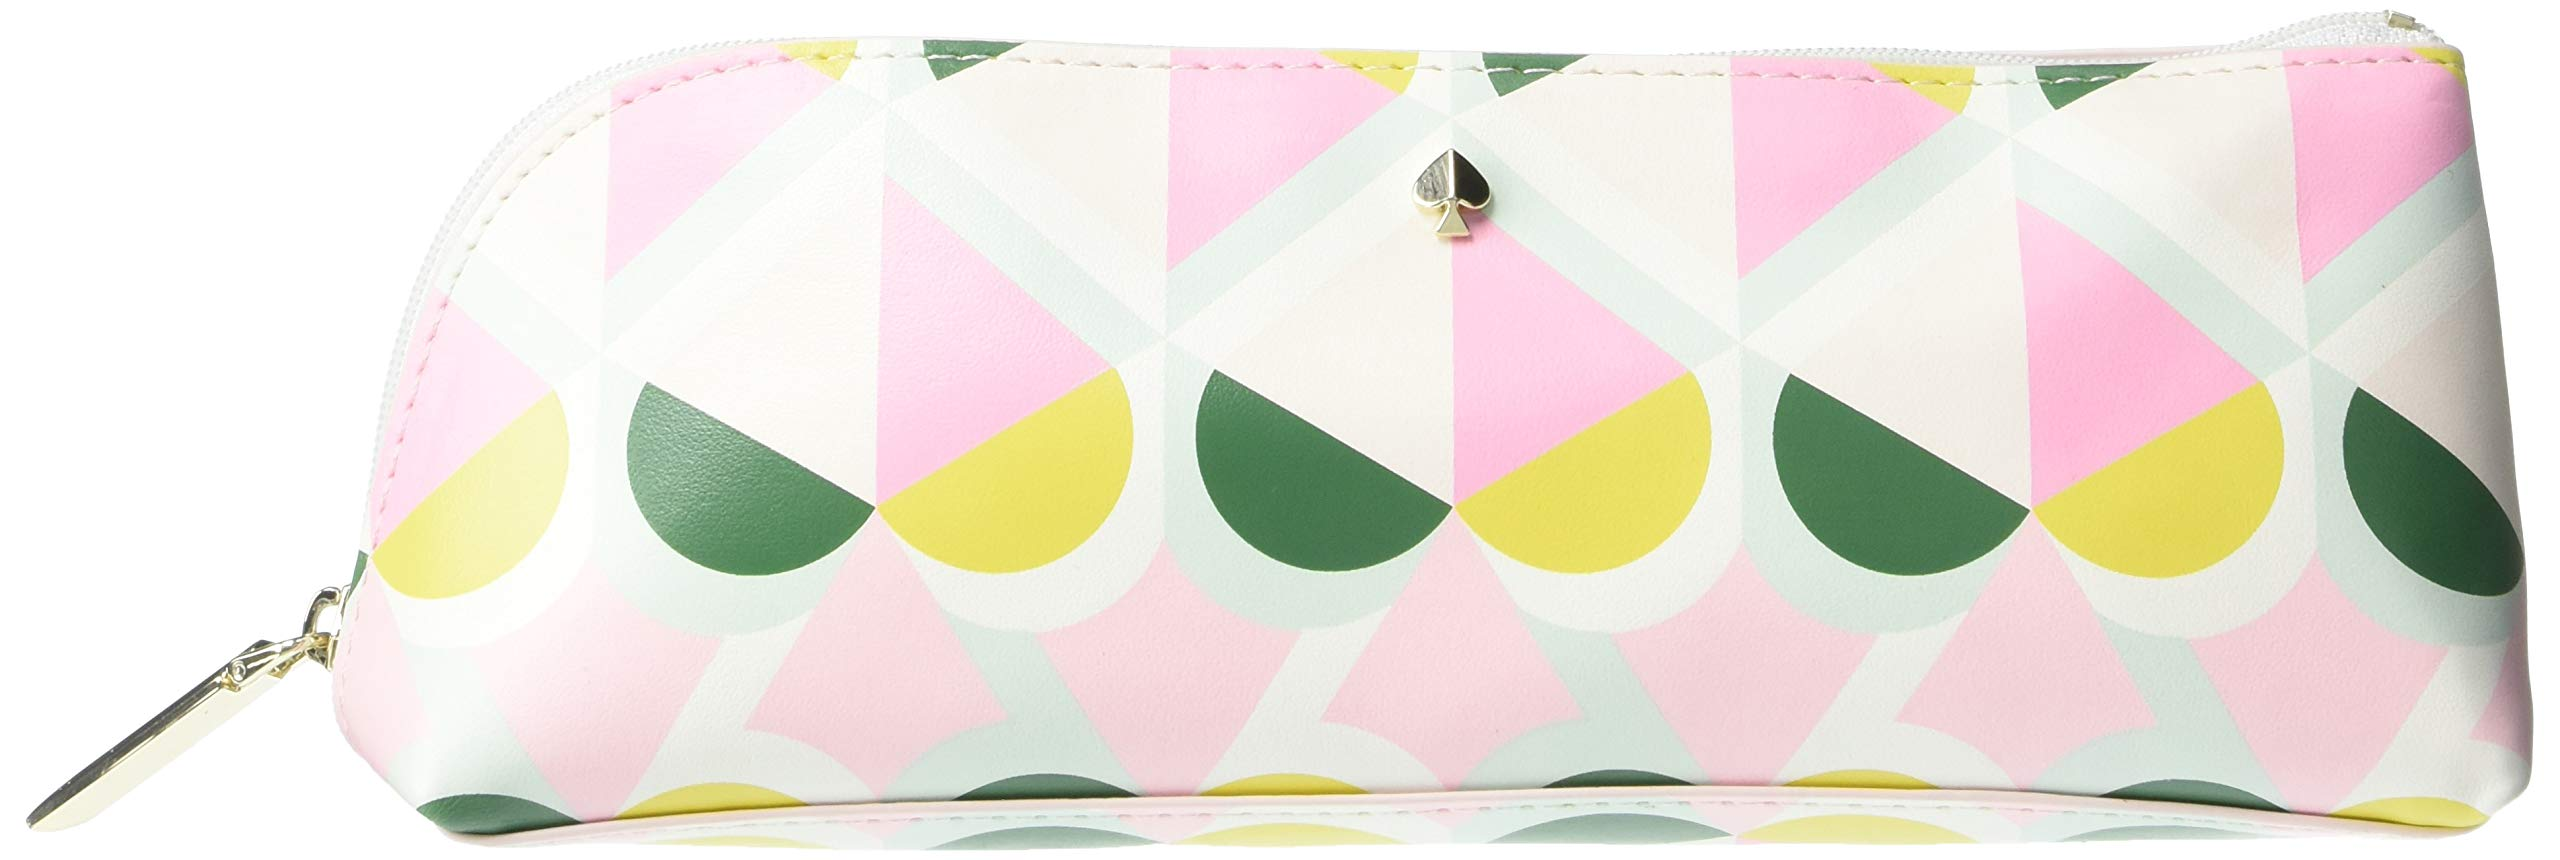 Kate Spade New York Pencil Case Including 2 Pencils, Sharpener, Eraser, and Ruler School Supplies (Geo Spade) by Kate Spade New York